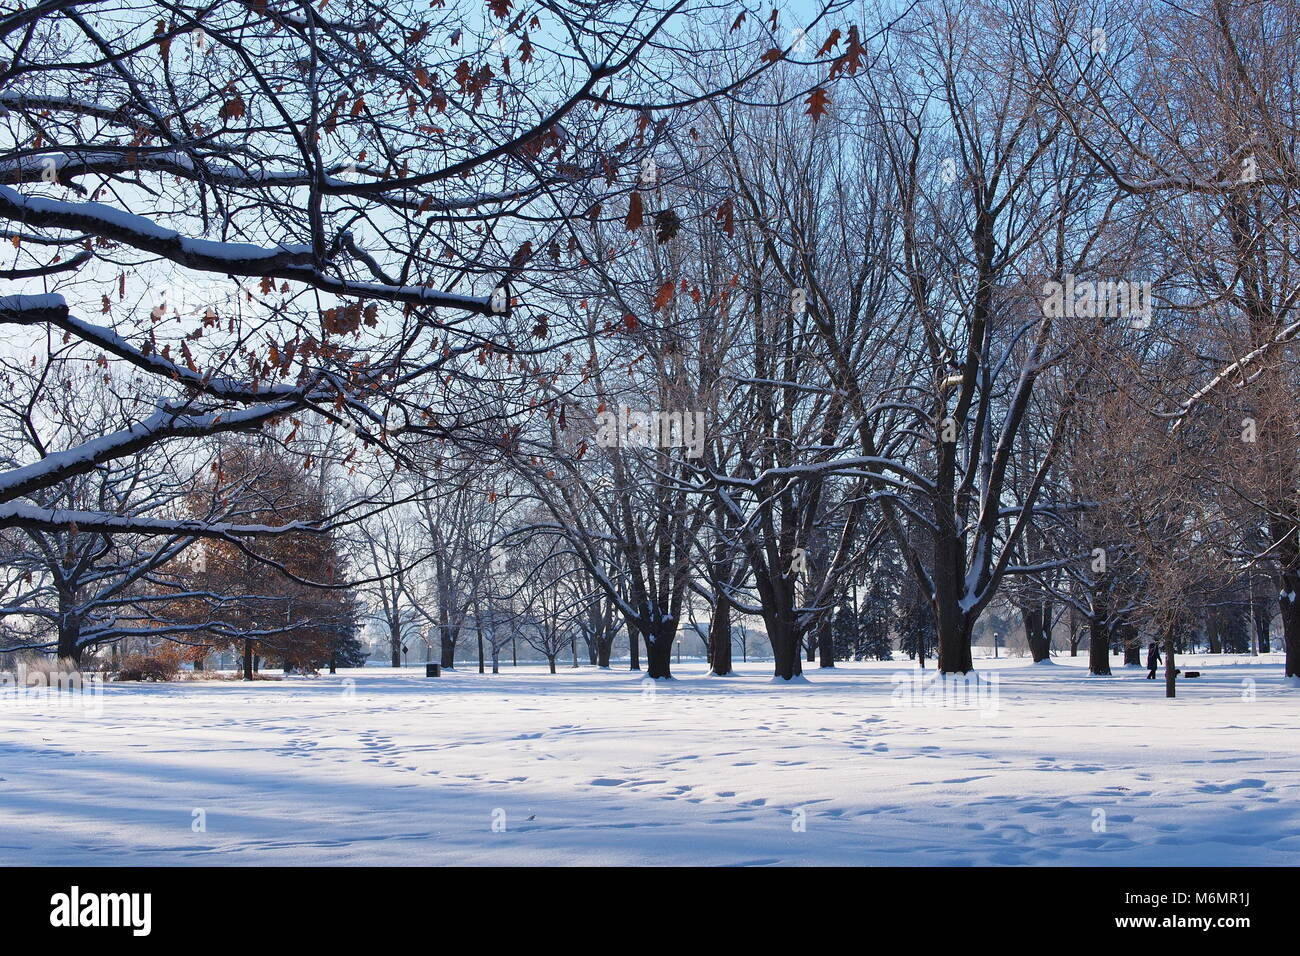 Snow covered trees on a clear winter day, Commissioners Park, Ottawa, Ontario, Canada. - Stock Image